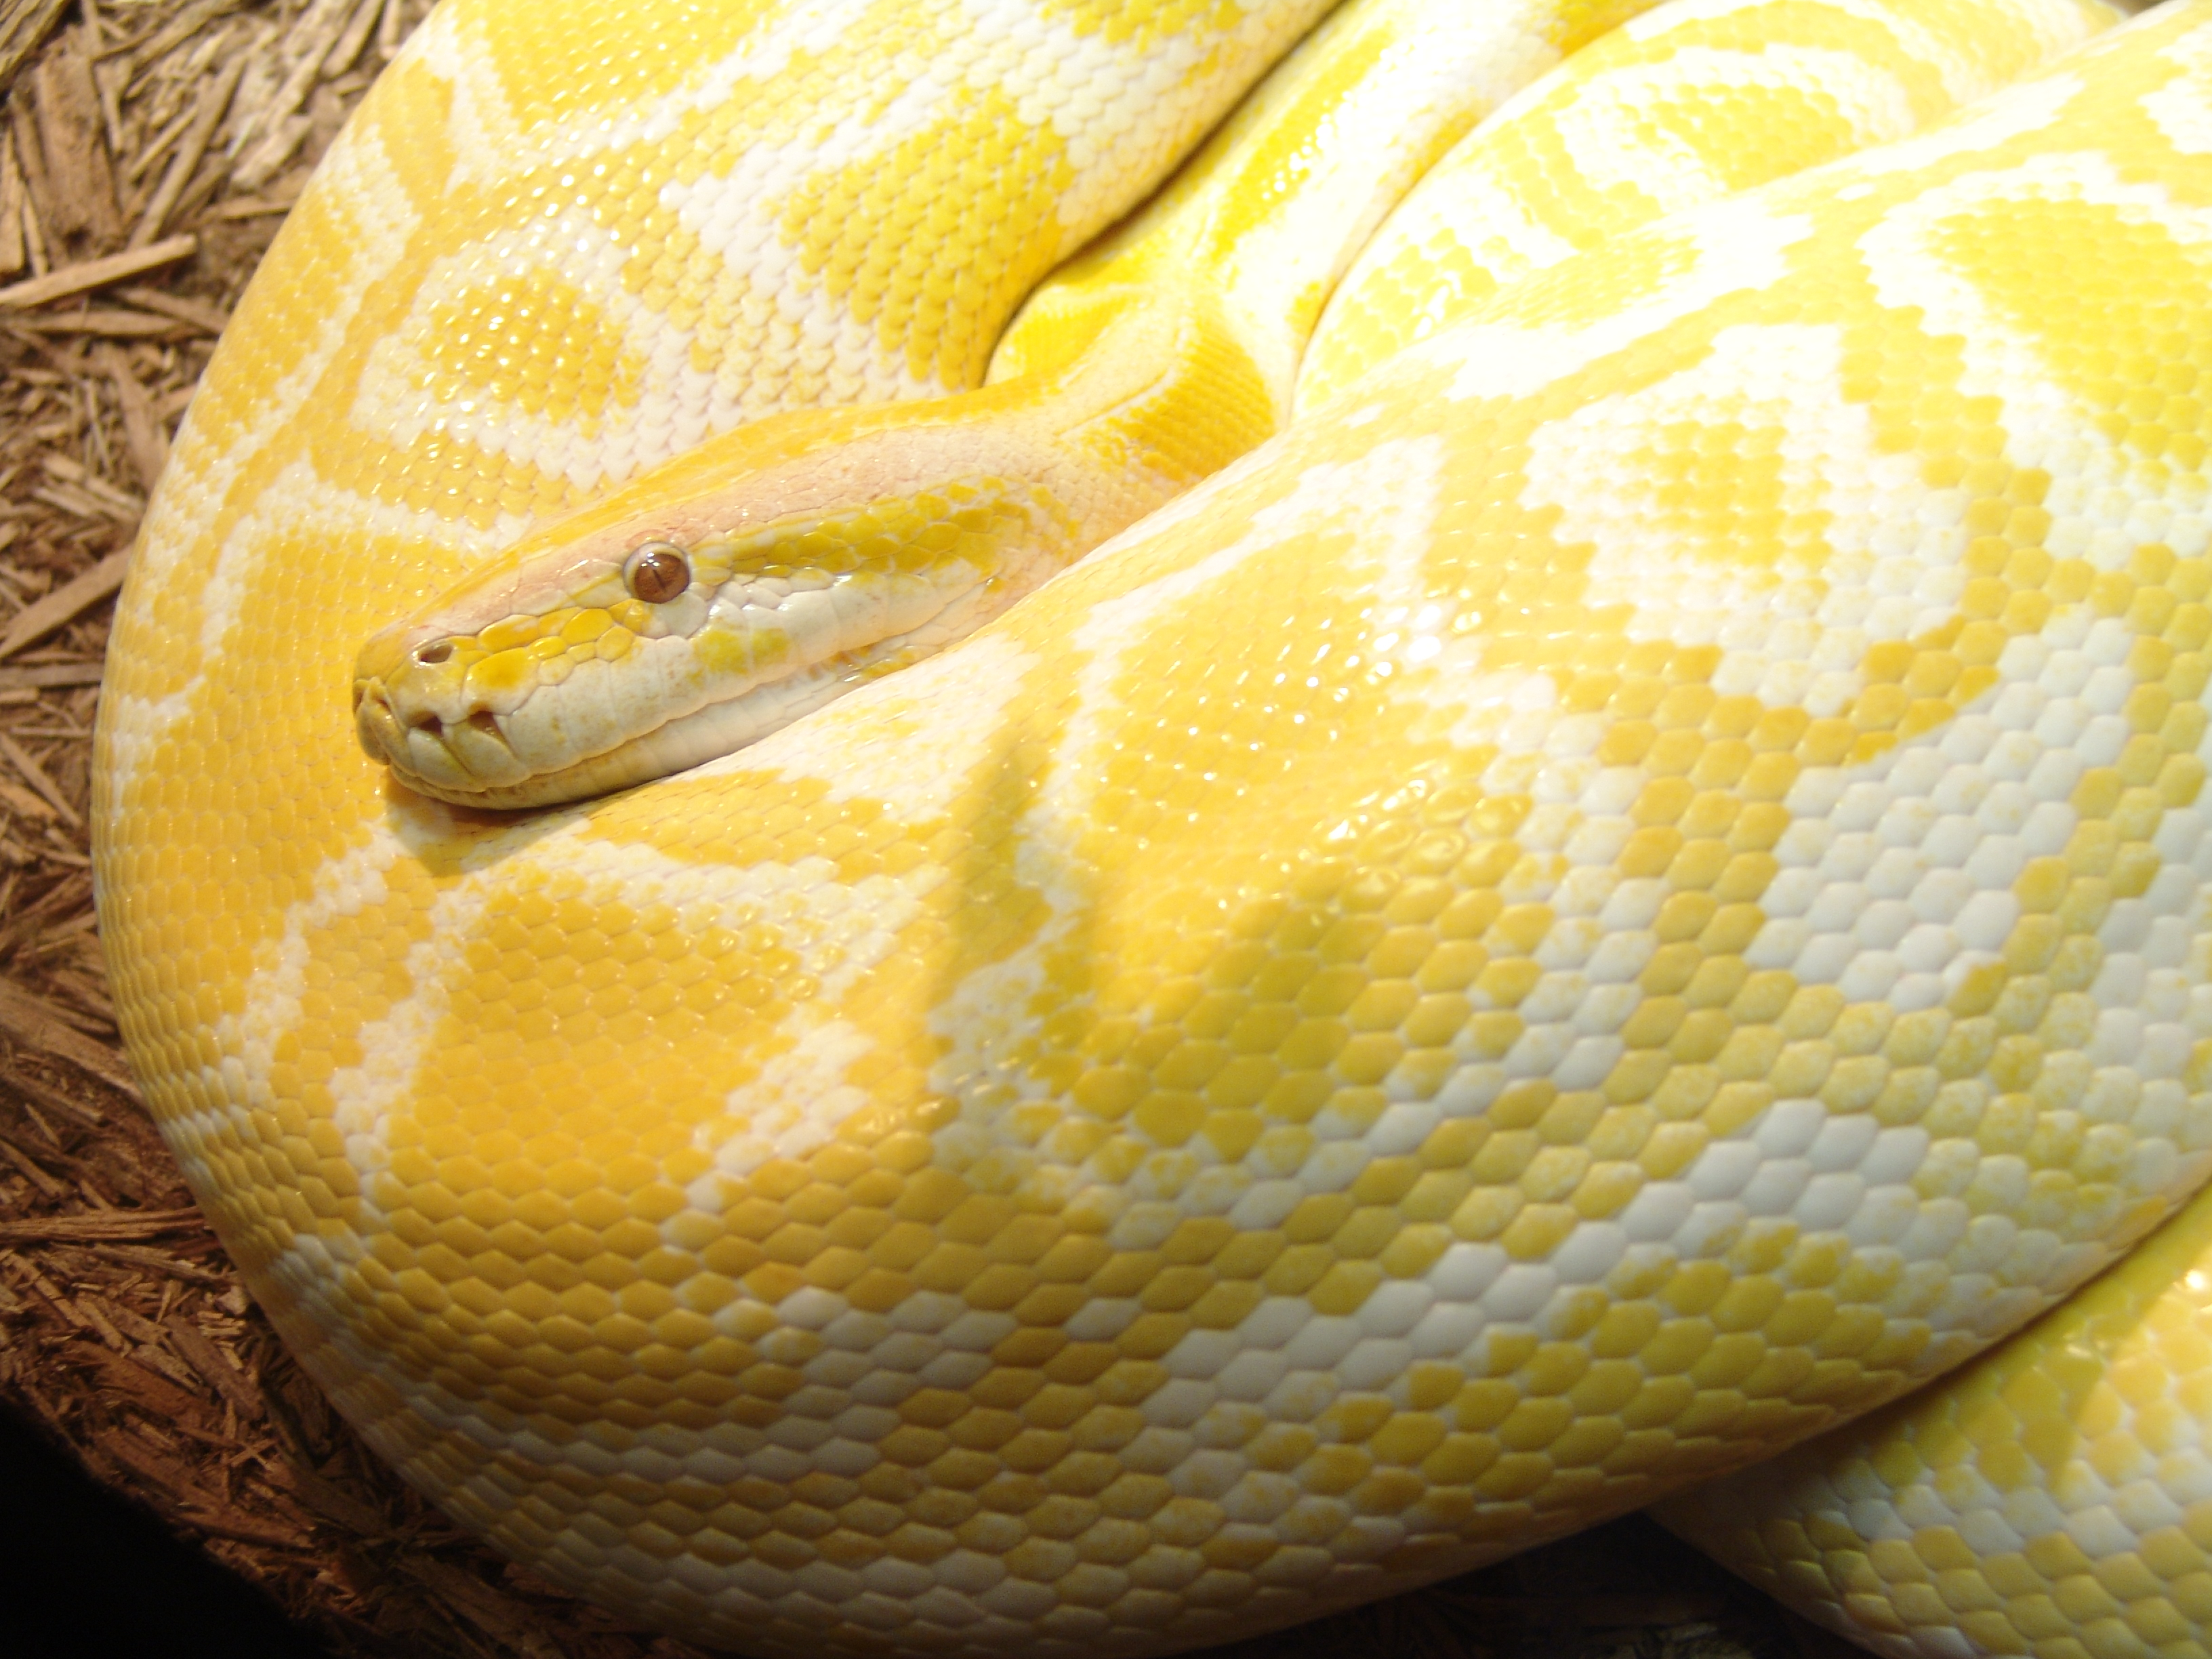 File:BURMESE PYTHON 02.jpg - Wikipedia, the free encyclopedia